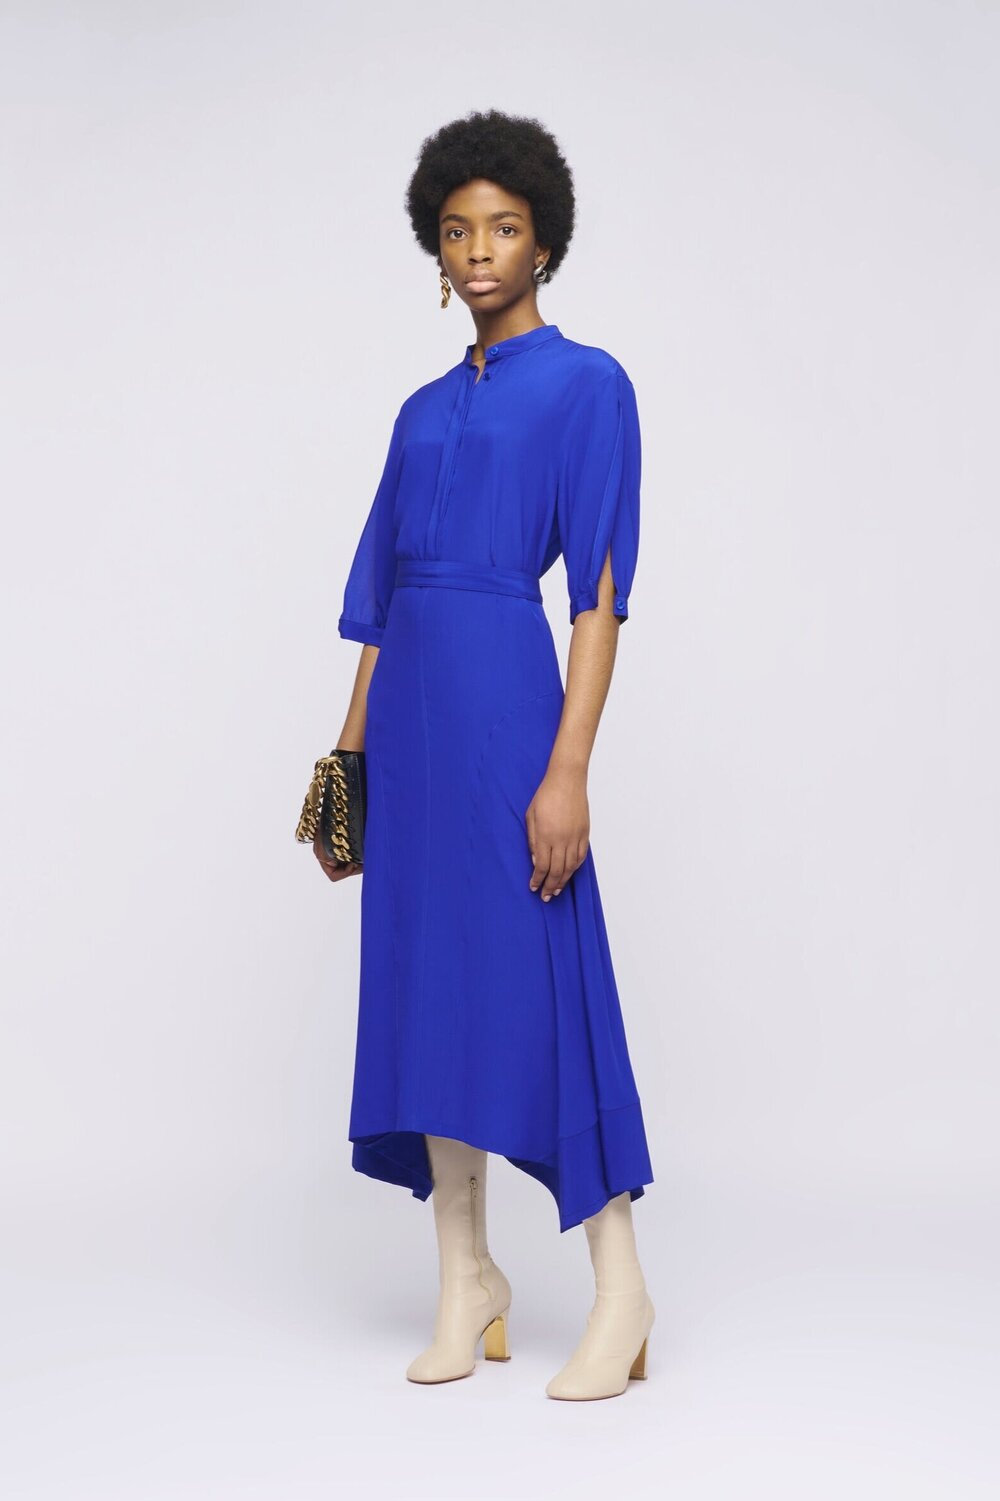 Sustainably Chic | Sustainable Fashion Blog | The Best Sustainable Dresses & Gowns for Weddings, Cocktail Parties & Special Events | Stella McCartney.jpg